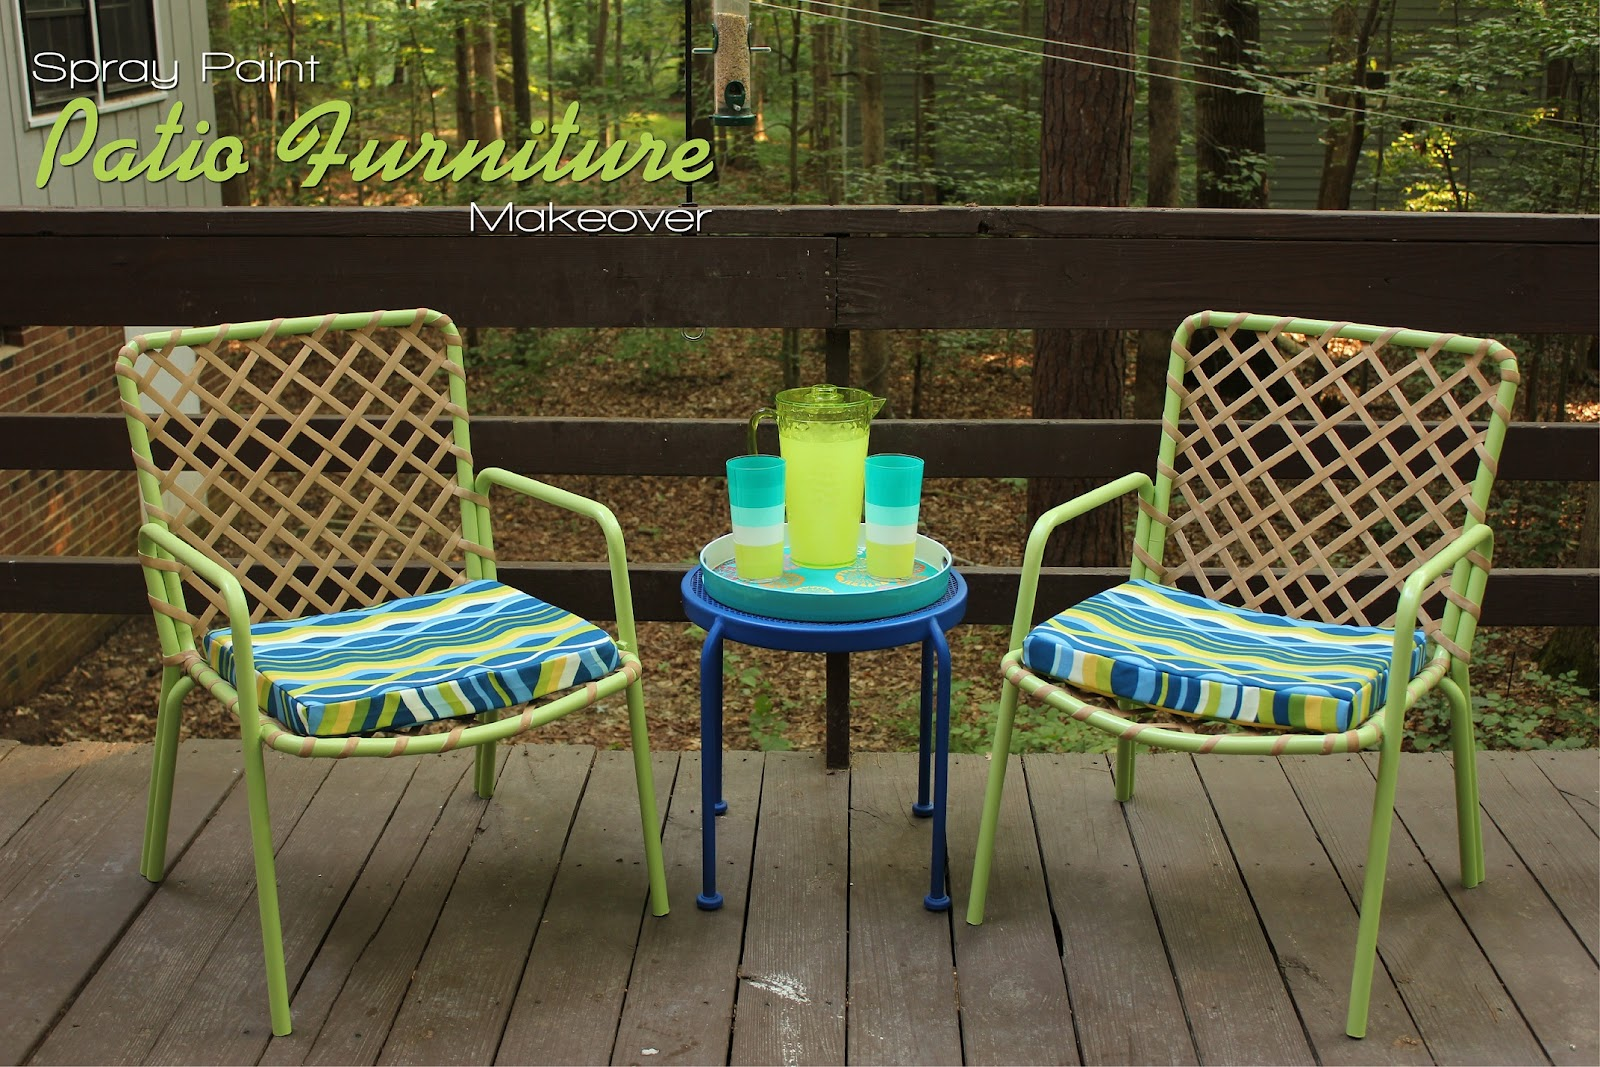 Genial Spray Paint Patio Furniture Makeover